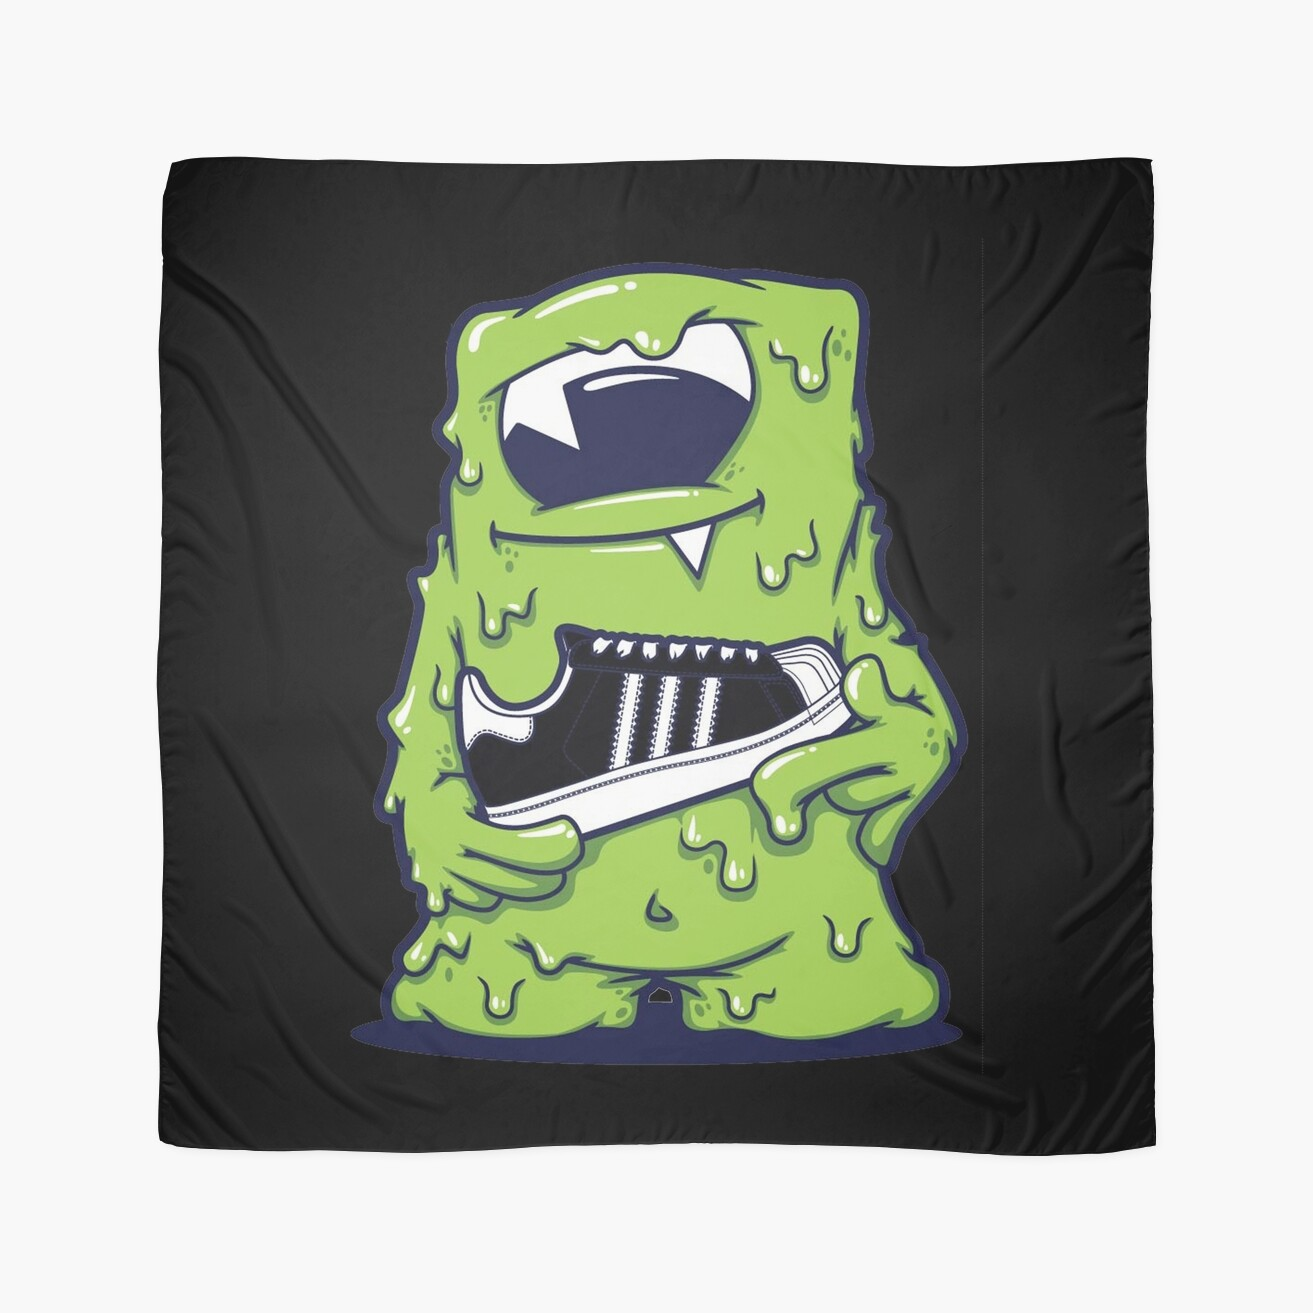 "light green monster shoes art design monster"" scarves by winifred, Reel Combo"